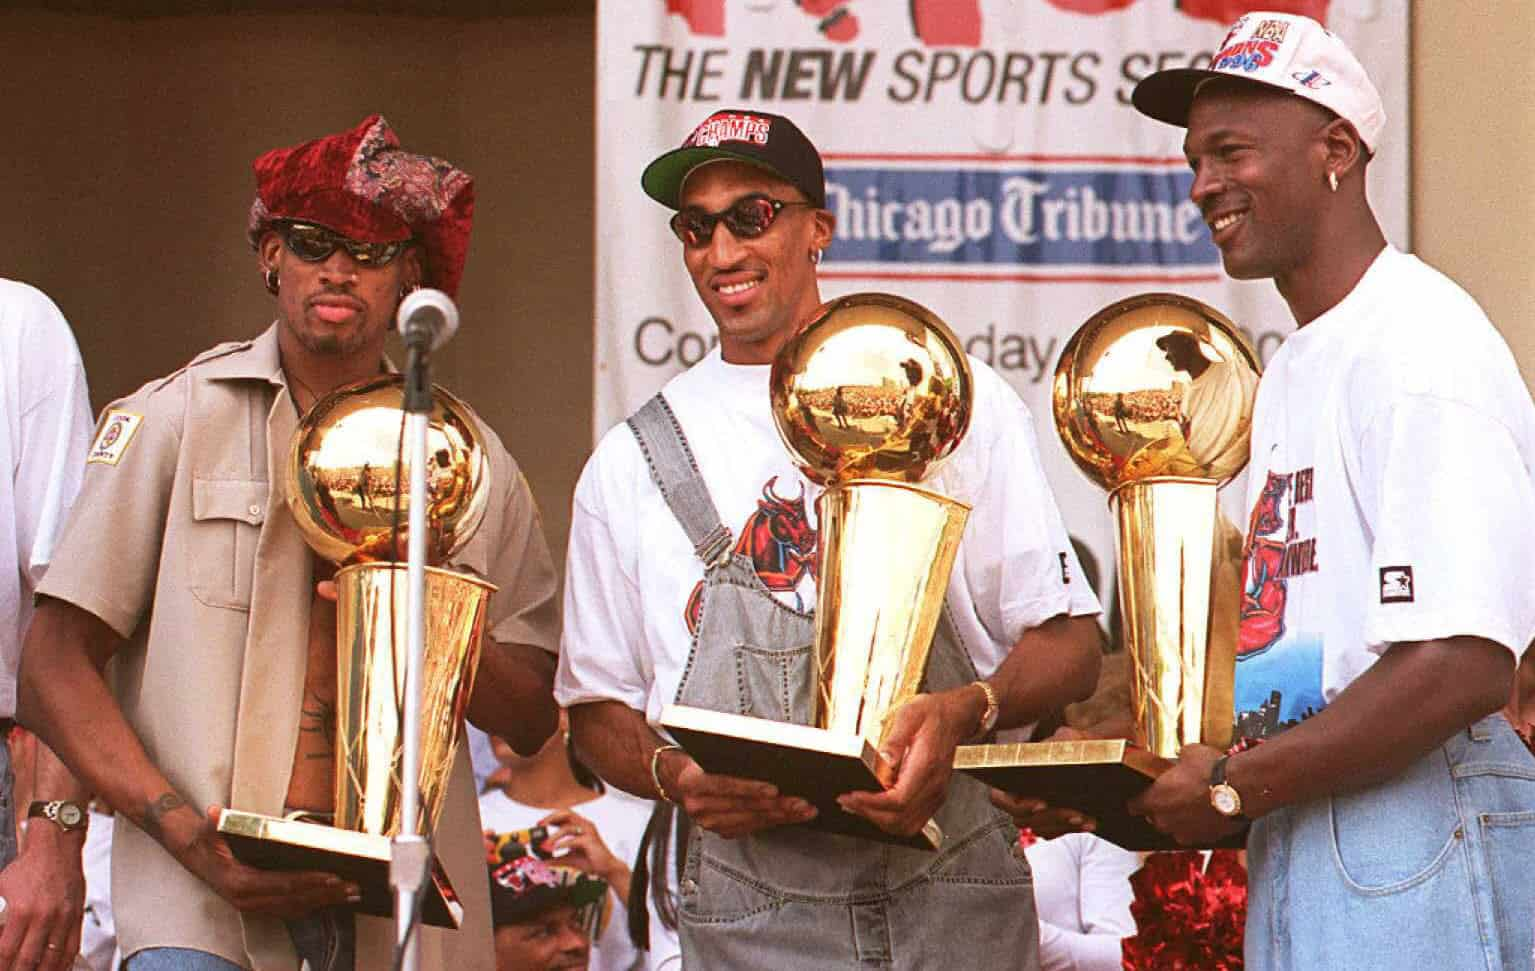 Dennis Rodman receiving awards along with his friends